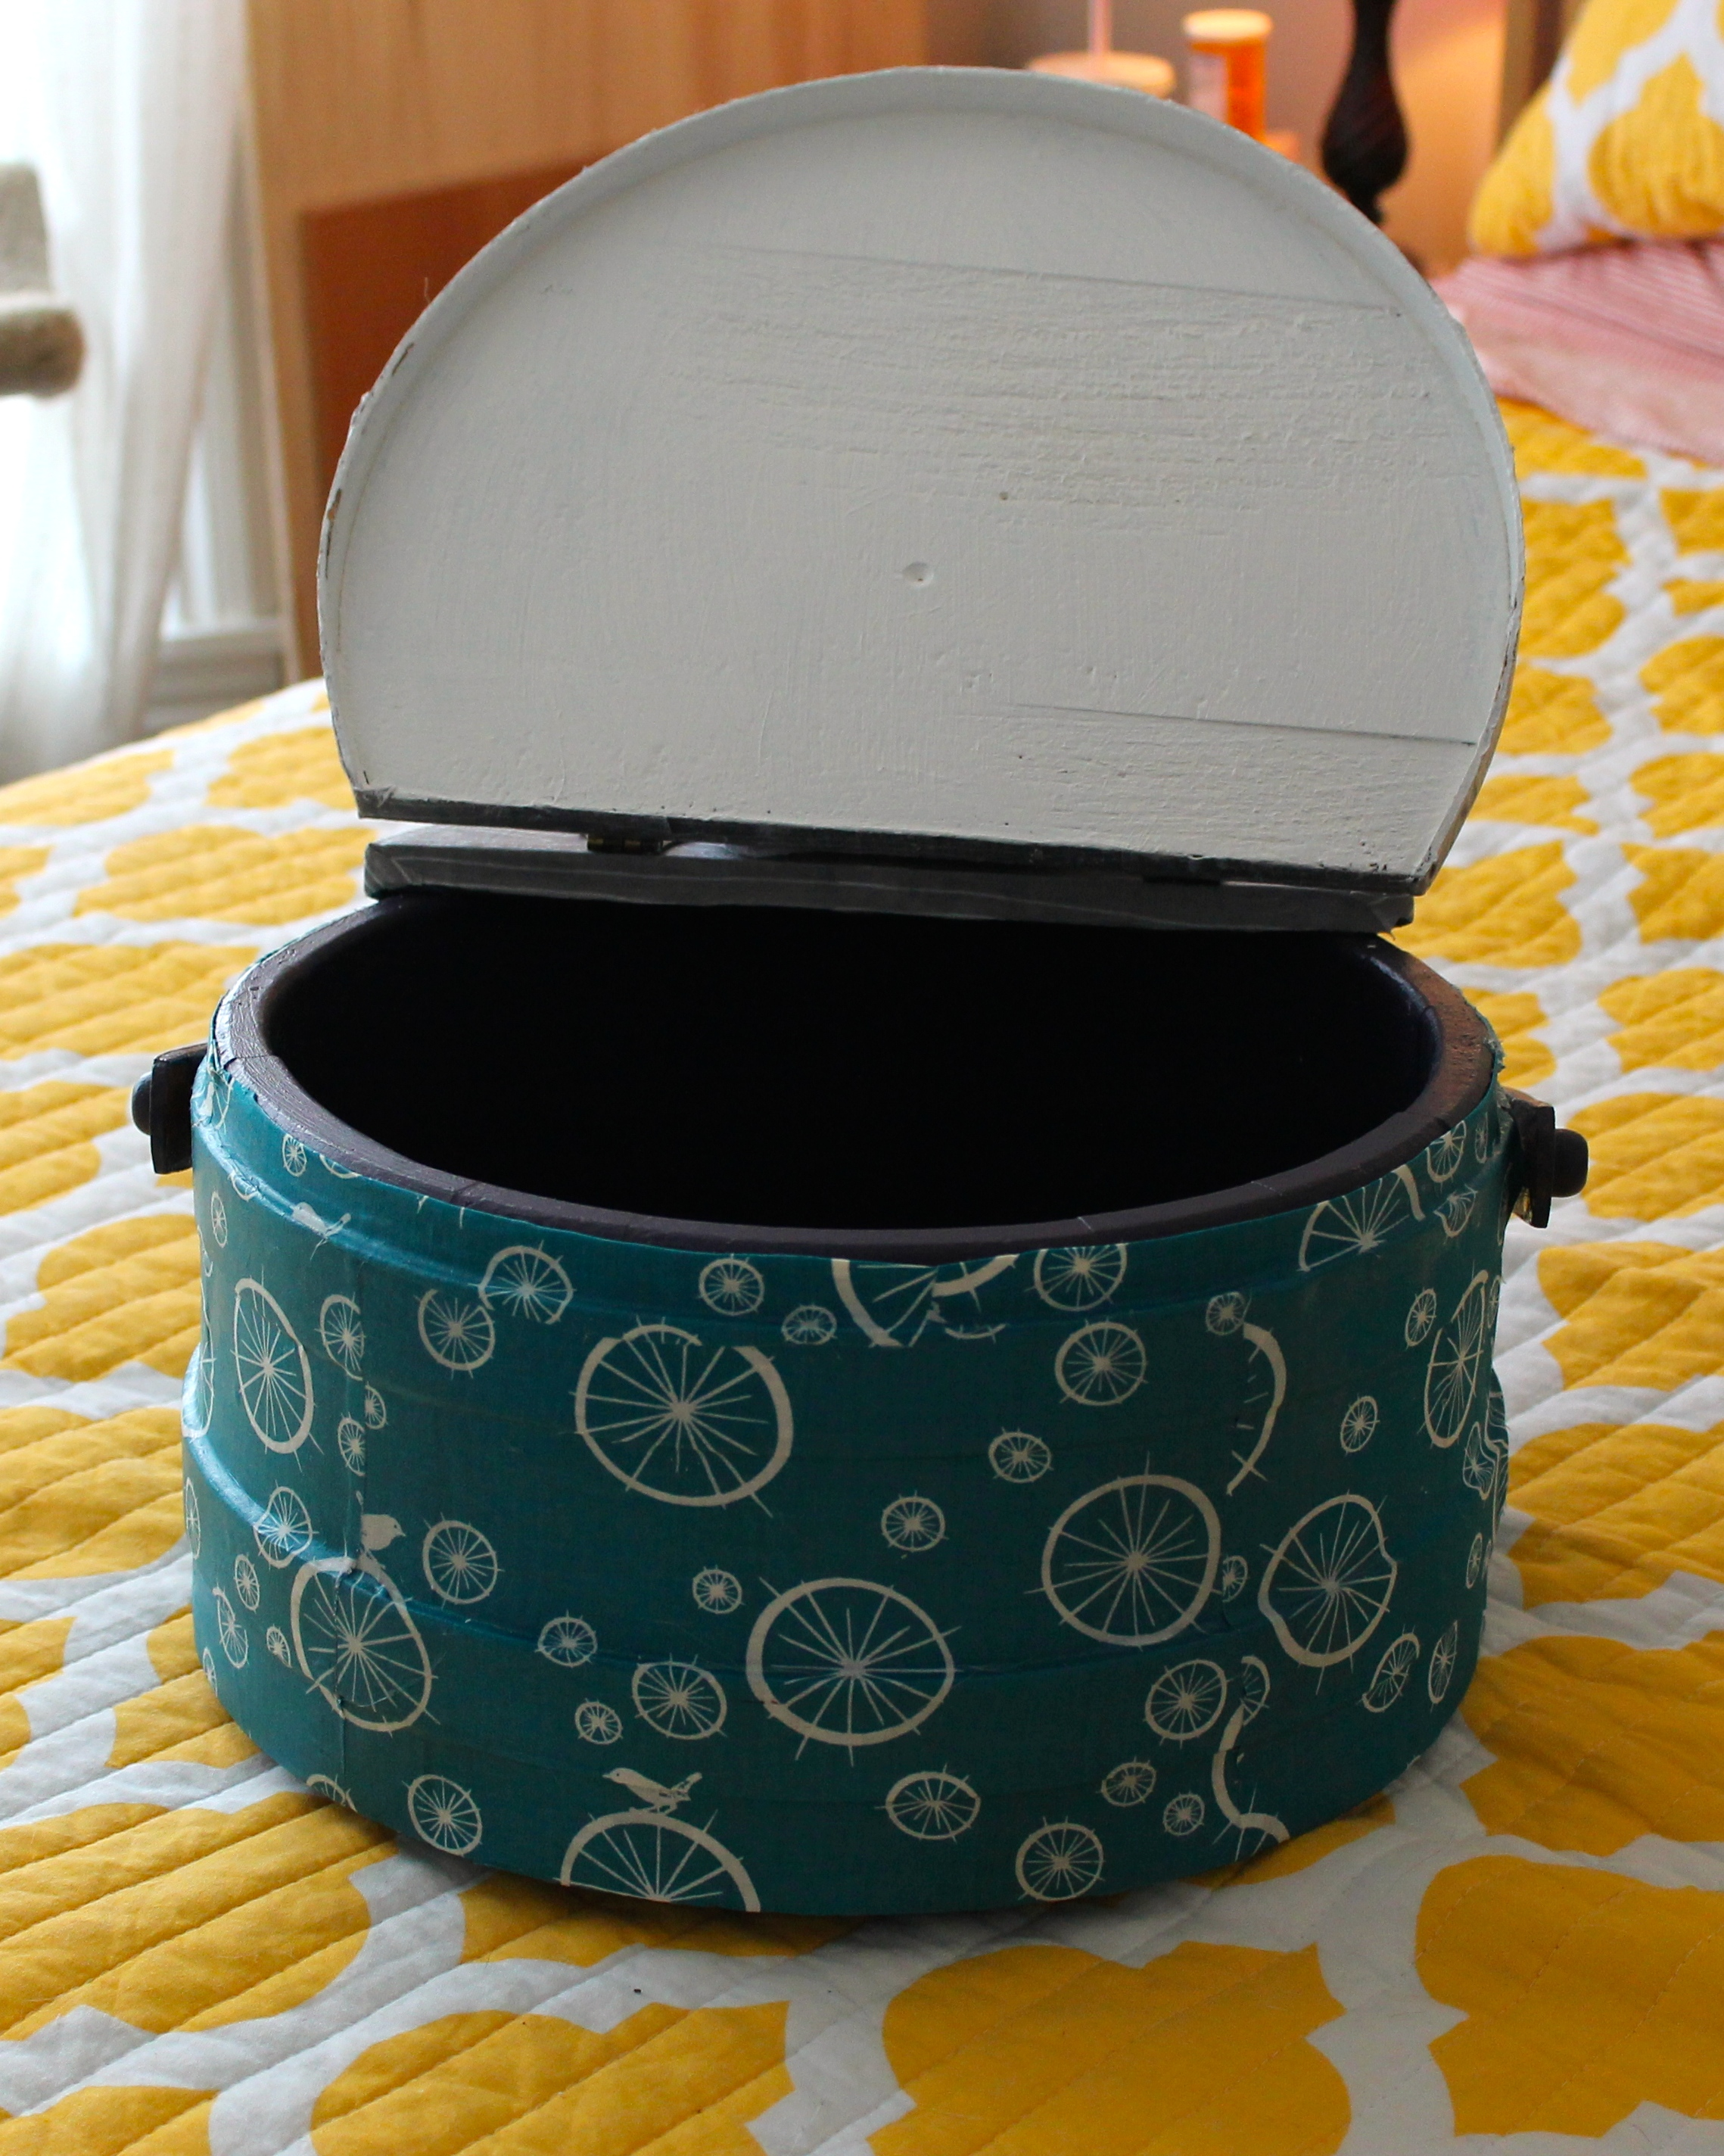 Thrift store wooden circular sewing box after update, modge podged with fabric